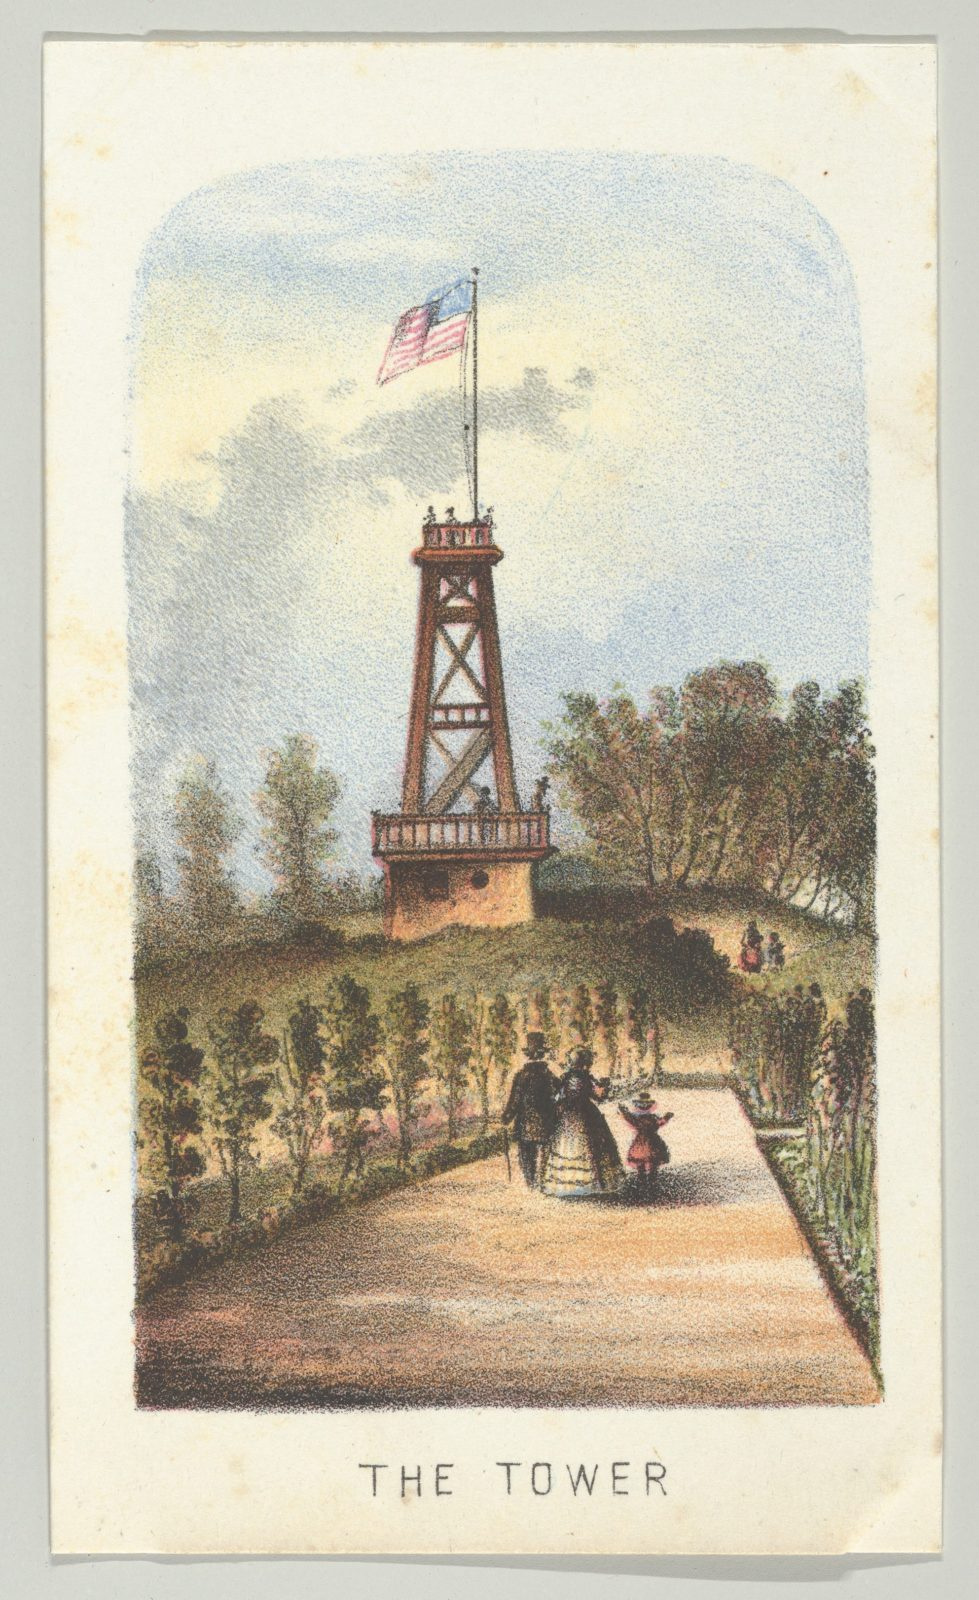 The Tower, from the series, Views in Central Park, New York, Part 2